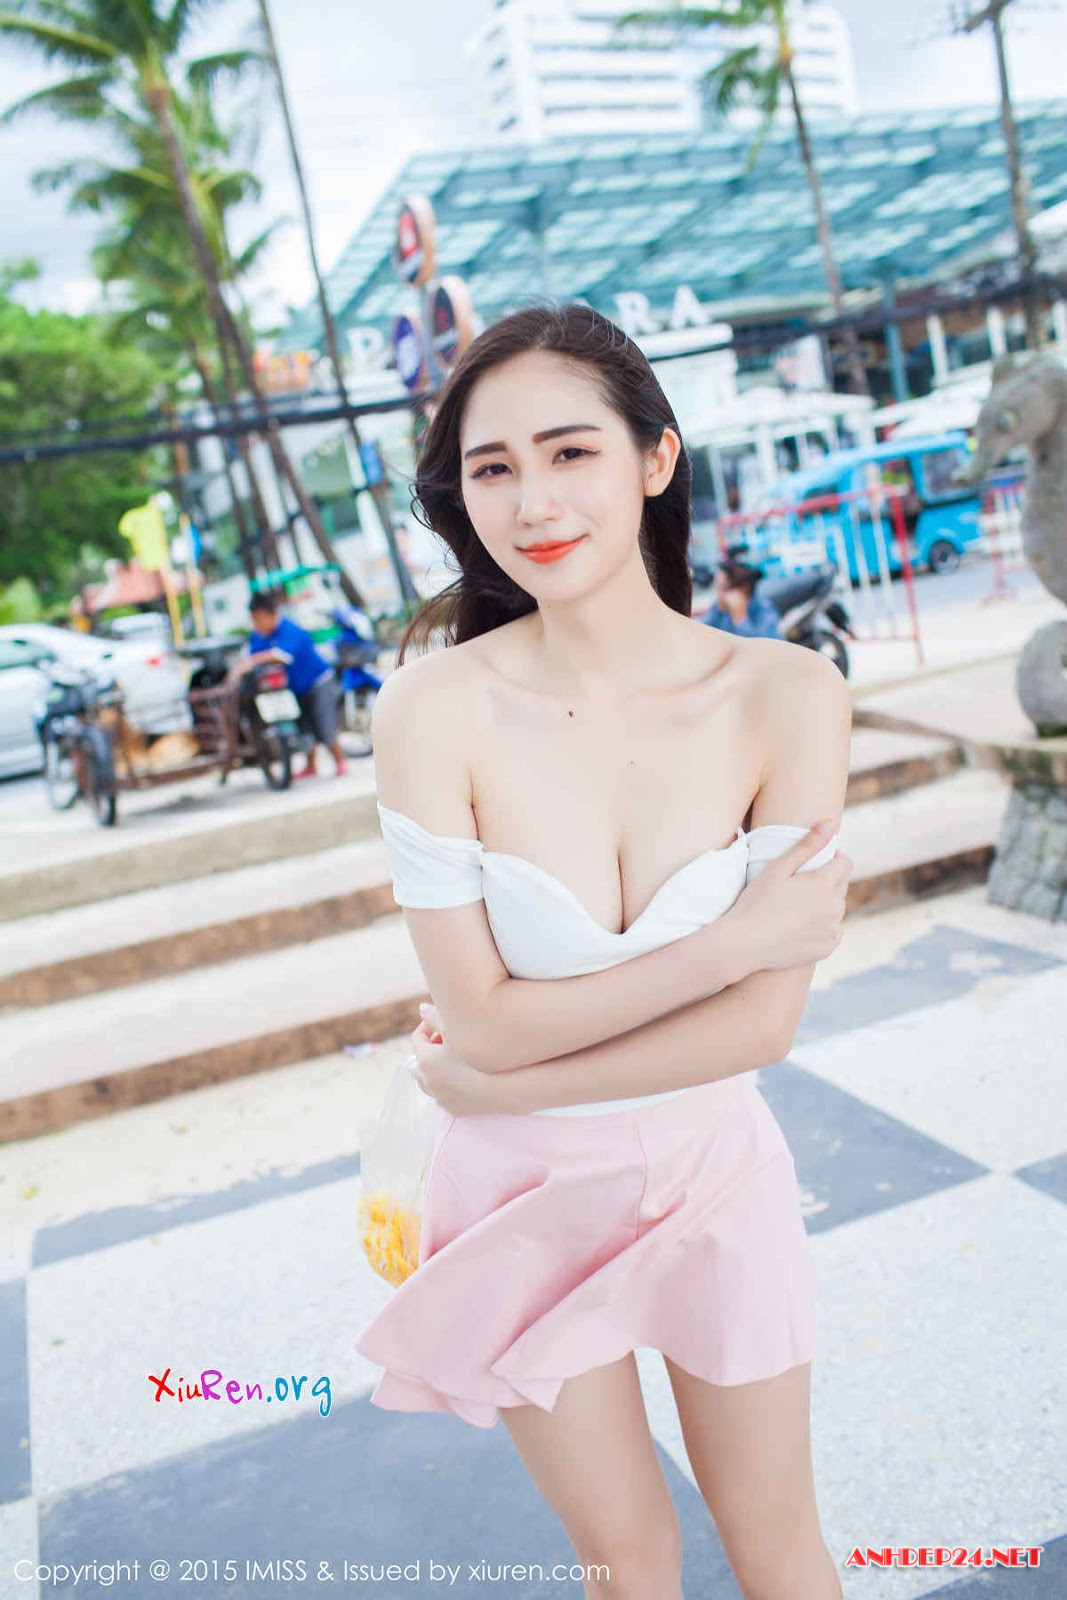 xem anh nude khong che